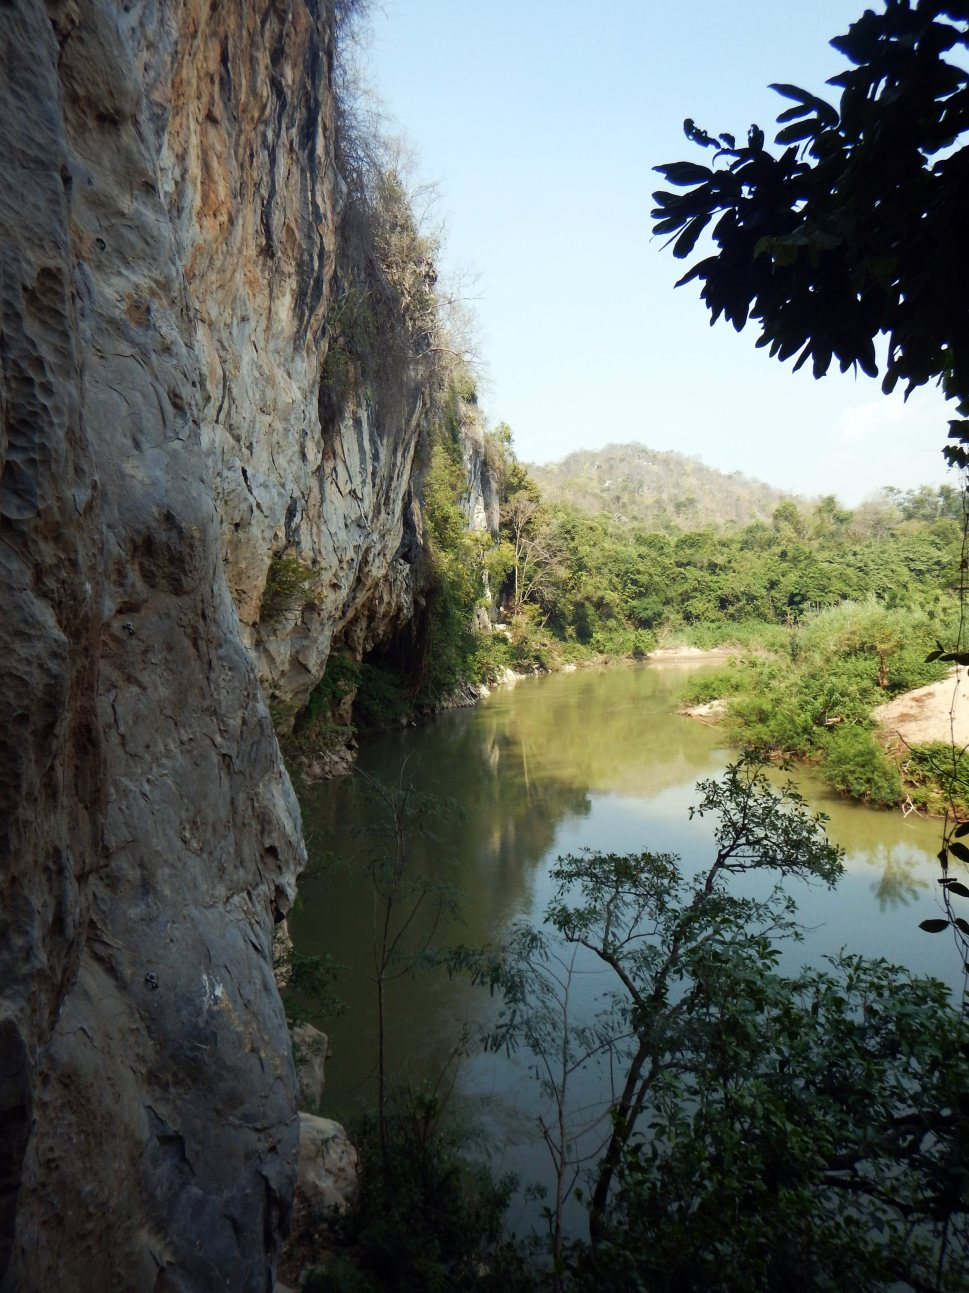 Main climbing wall and the Pasak River